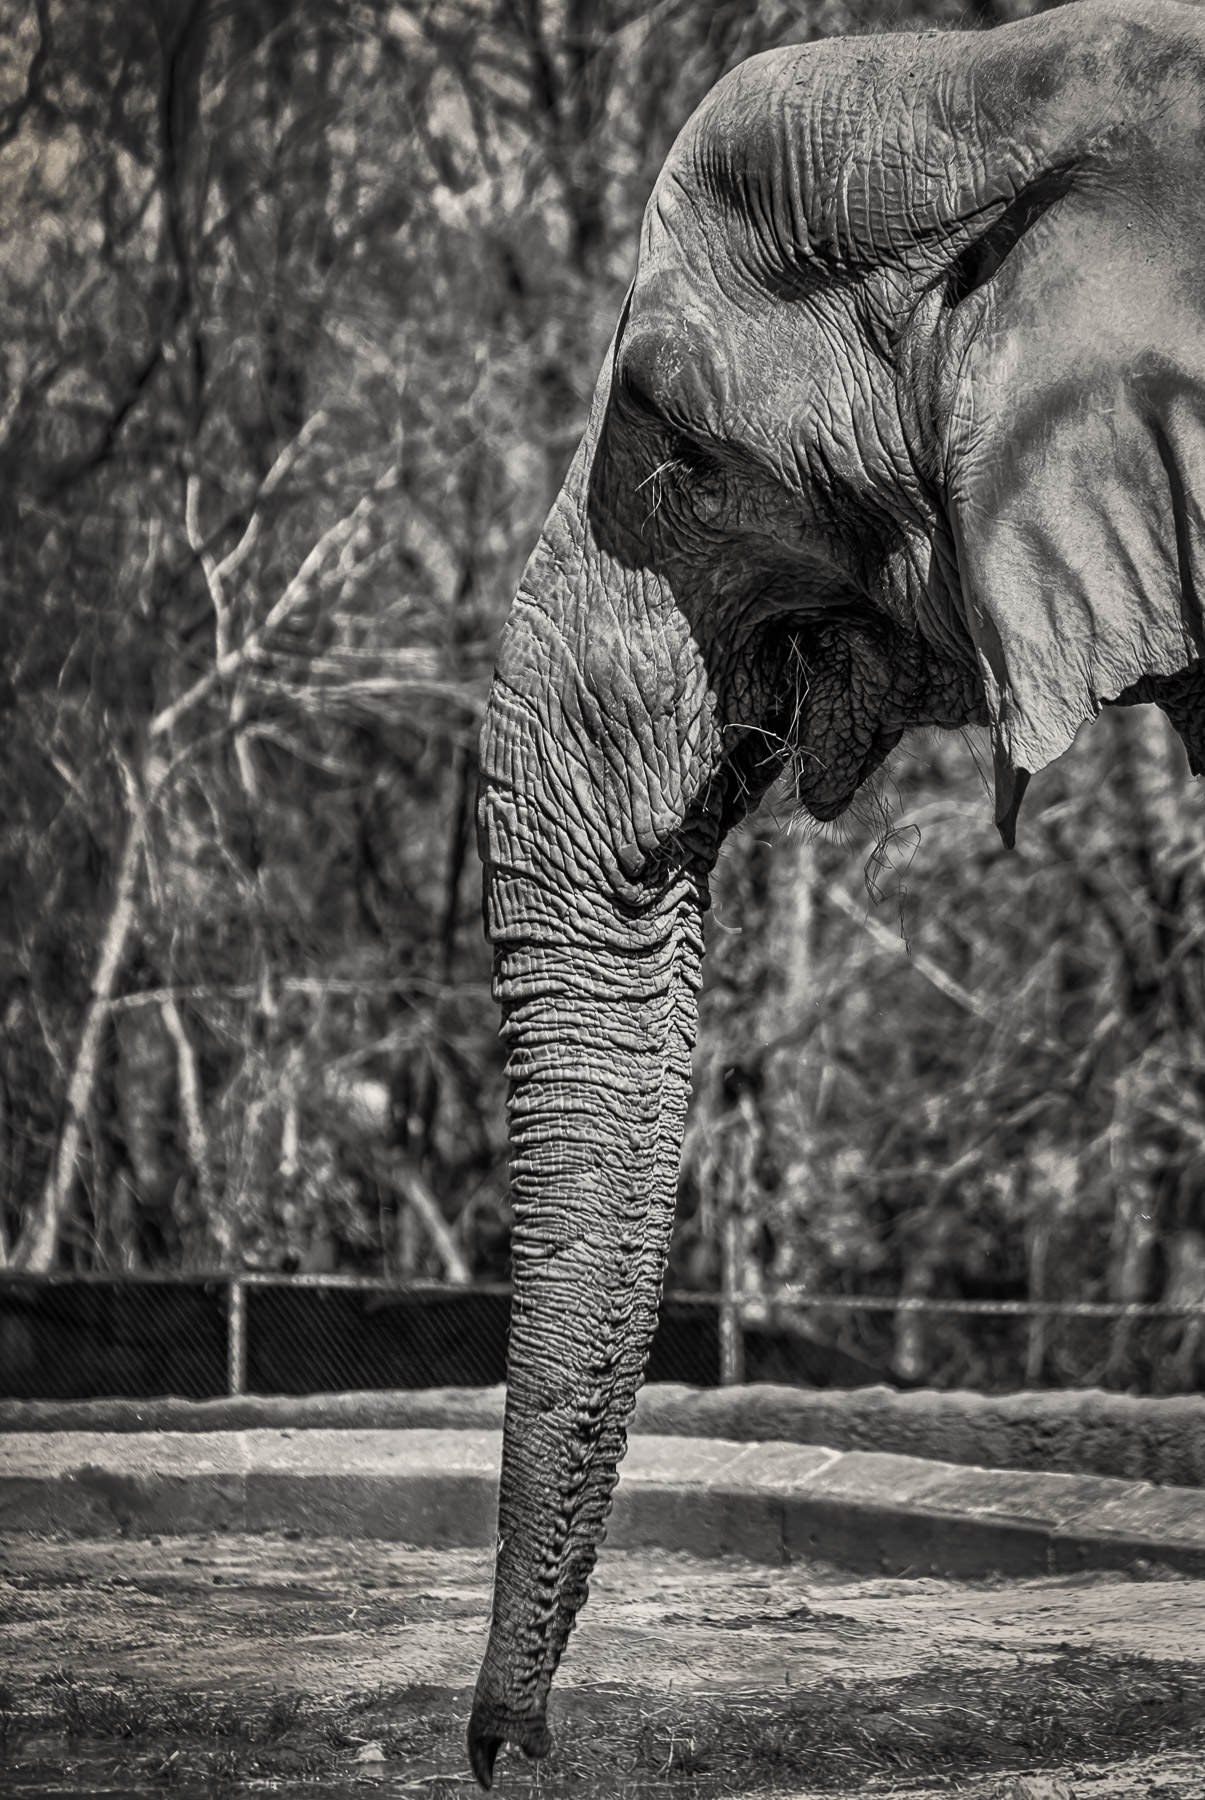 An elephant shows off his trunk at Tyler, Texas' Caldwell Zoo.